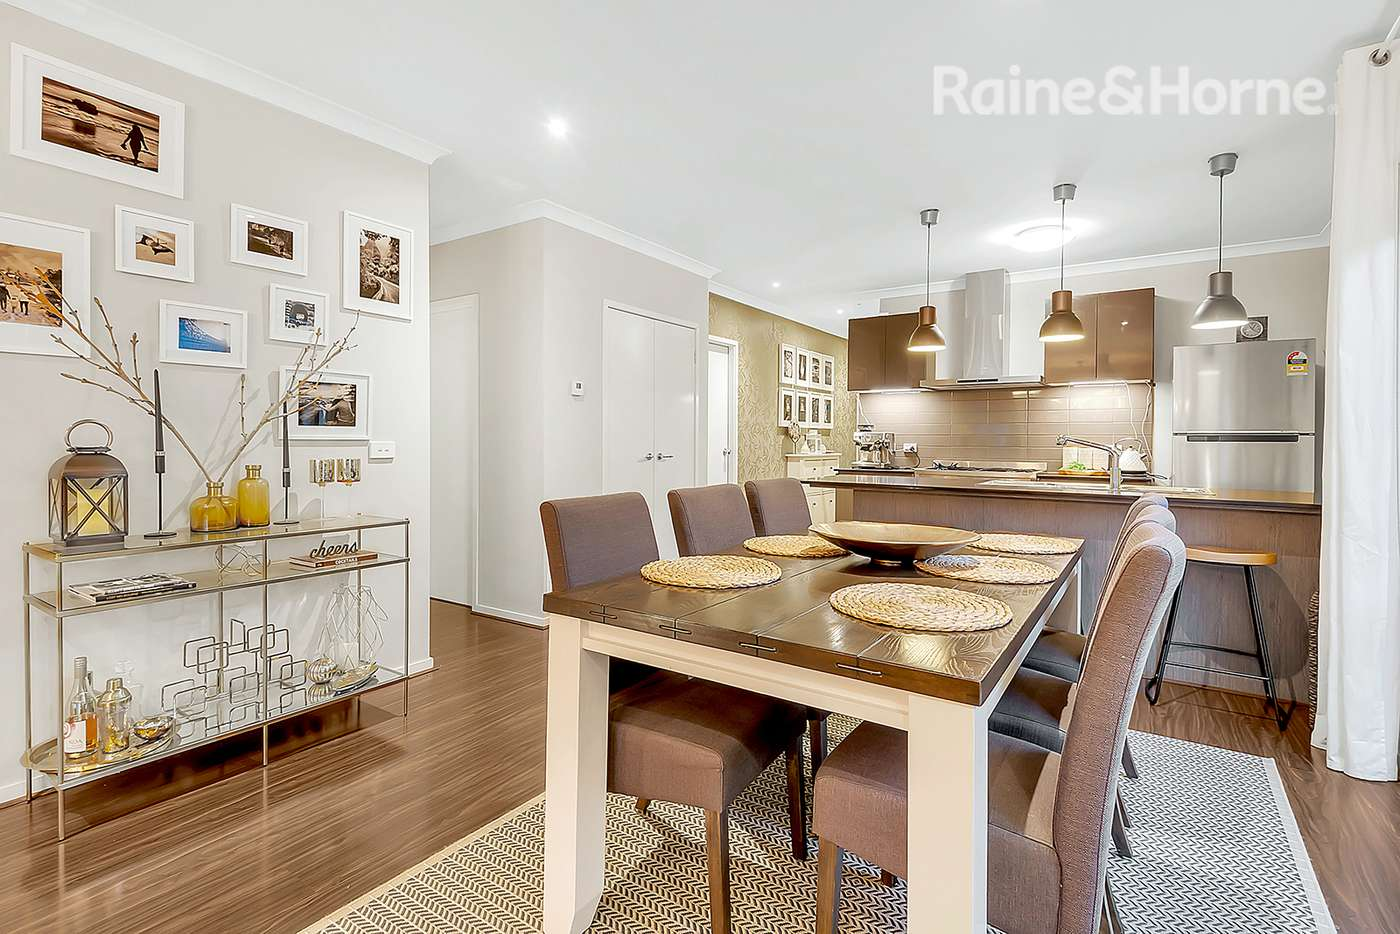 Seventh view of Homely house listing, 6 Powell Street, Craigieburn VIC 3064